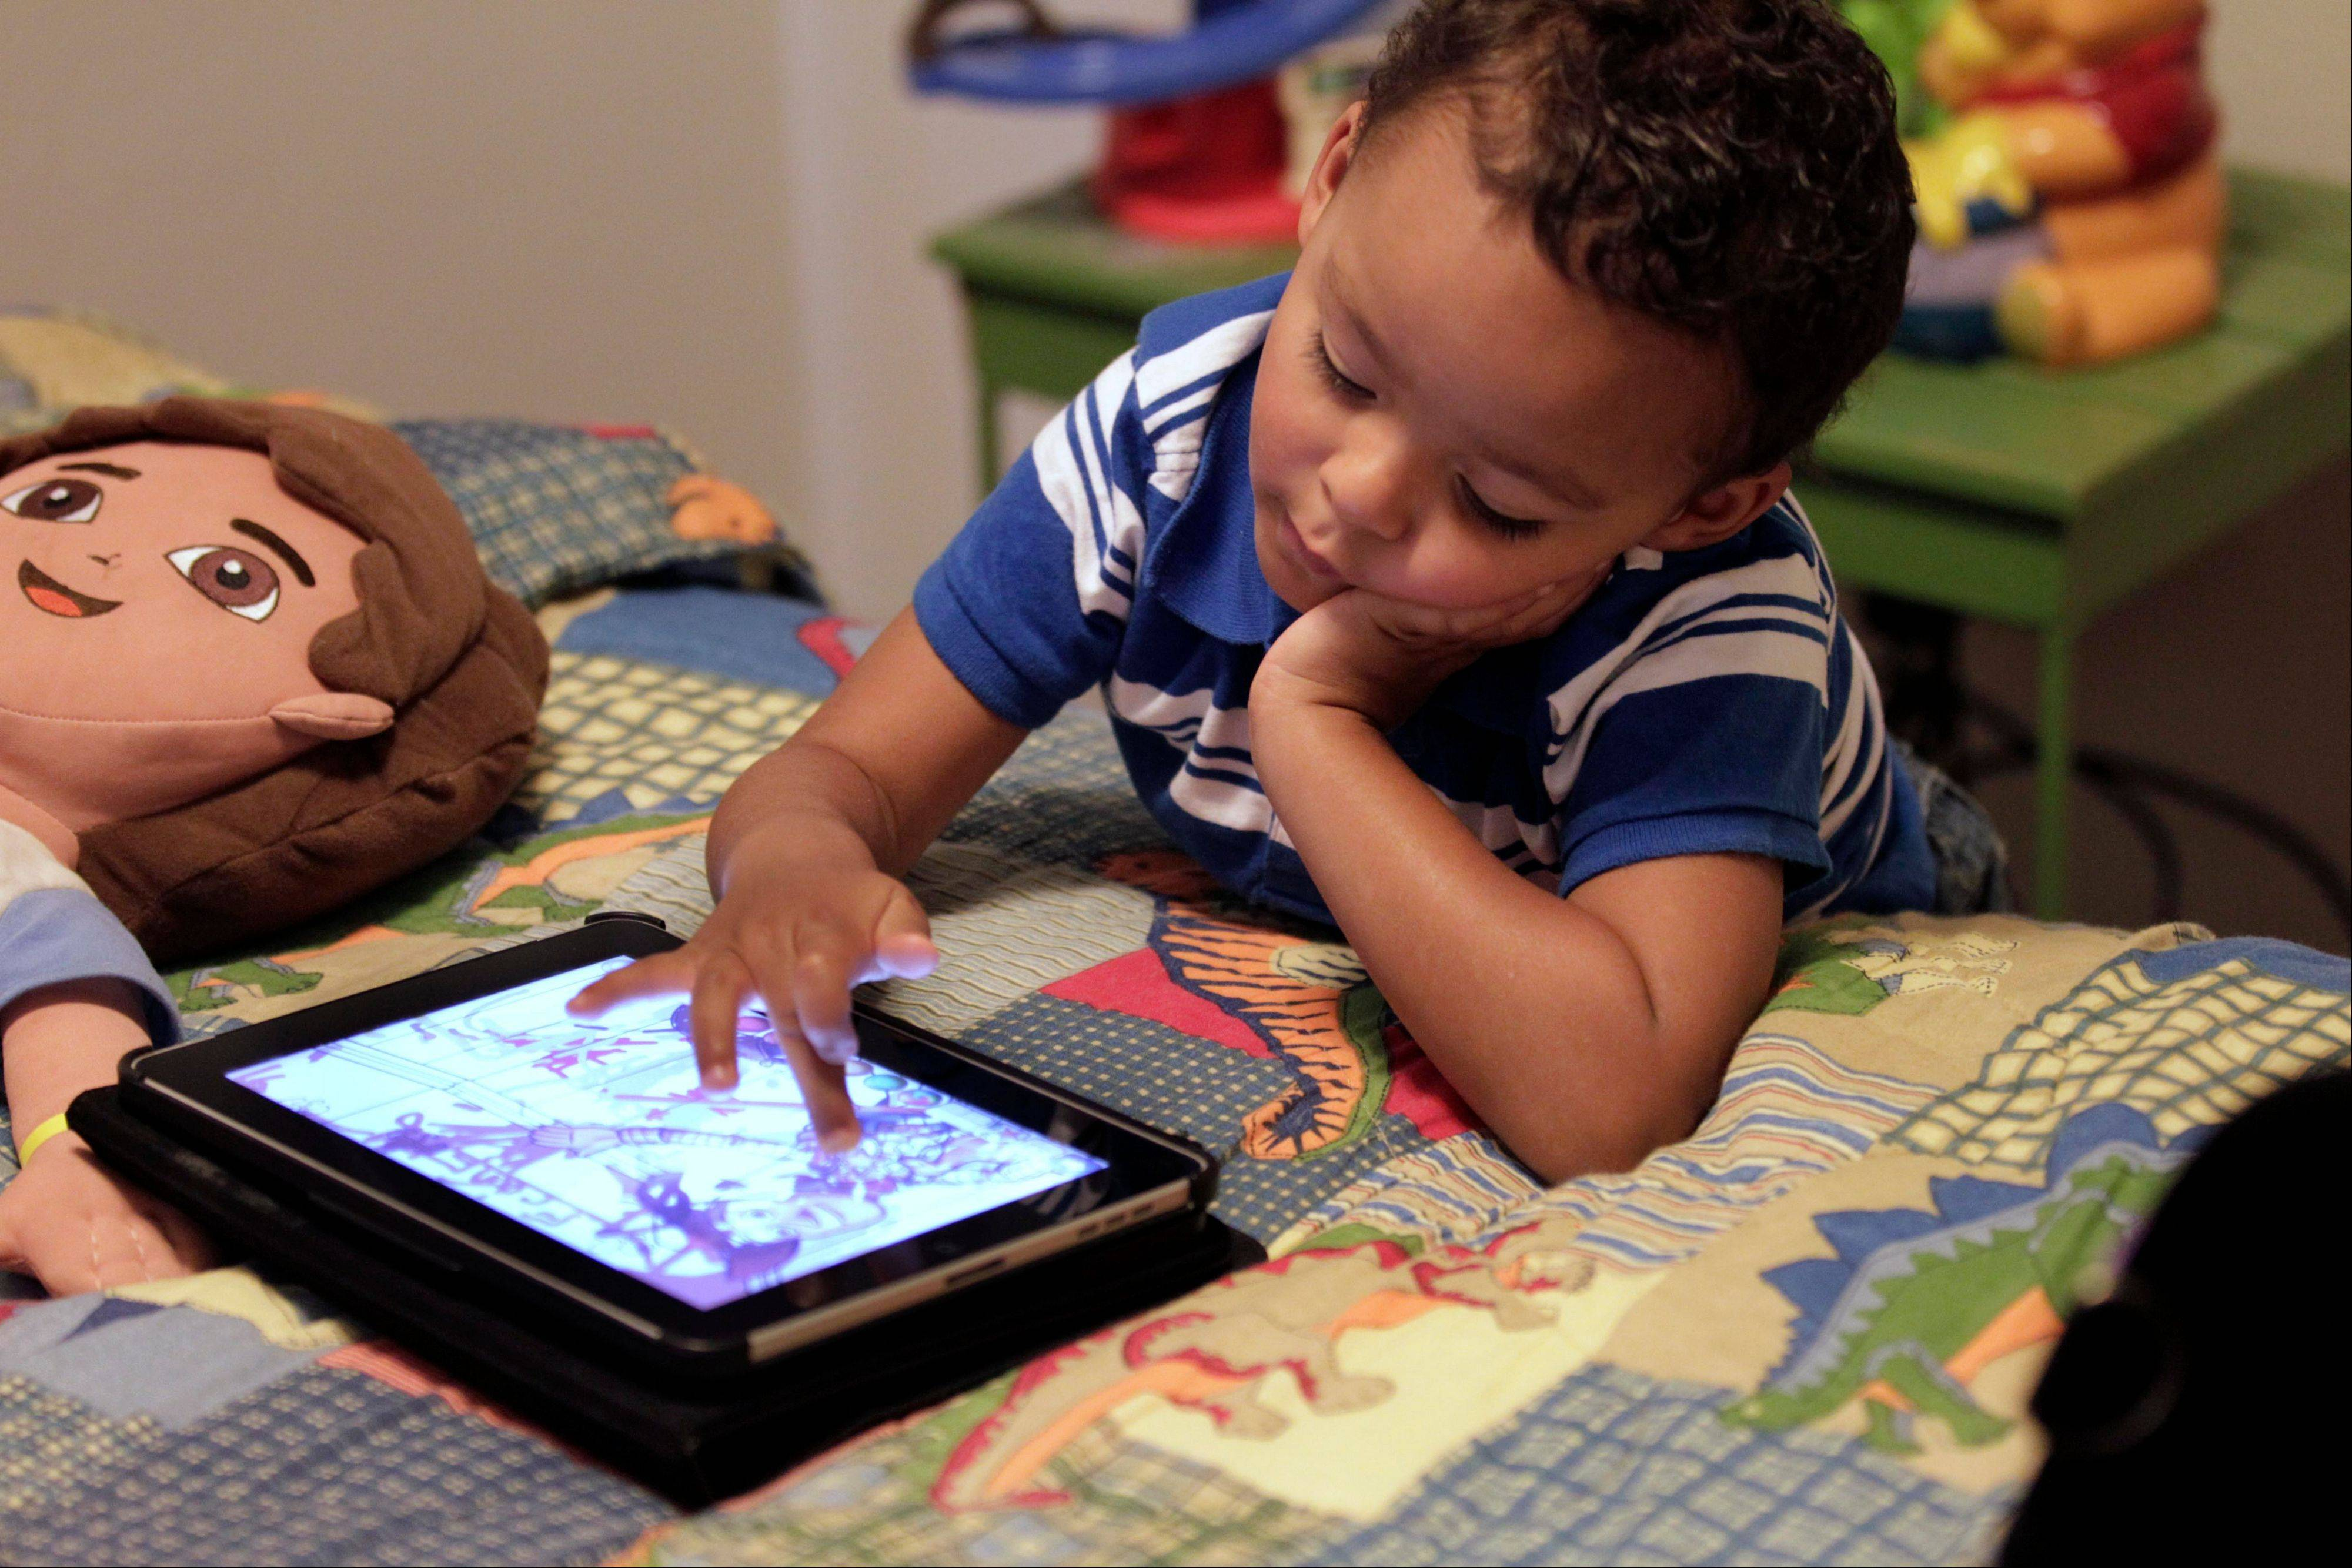 Frankie Thevenot, 3, plays with an iPad in his bedroom at his home in Metairie, La. The Campaign for a Commercial-Free Childhood, a Boston-based group, is urging federal investigators to examine the marketing practices of Fisher-Price's and Open Solution's mobile apps.